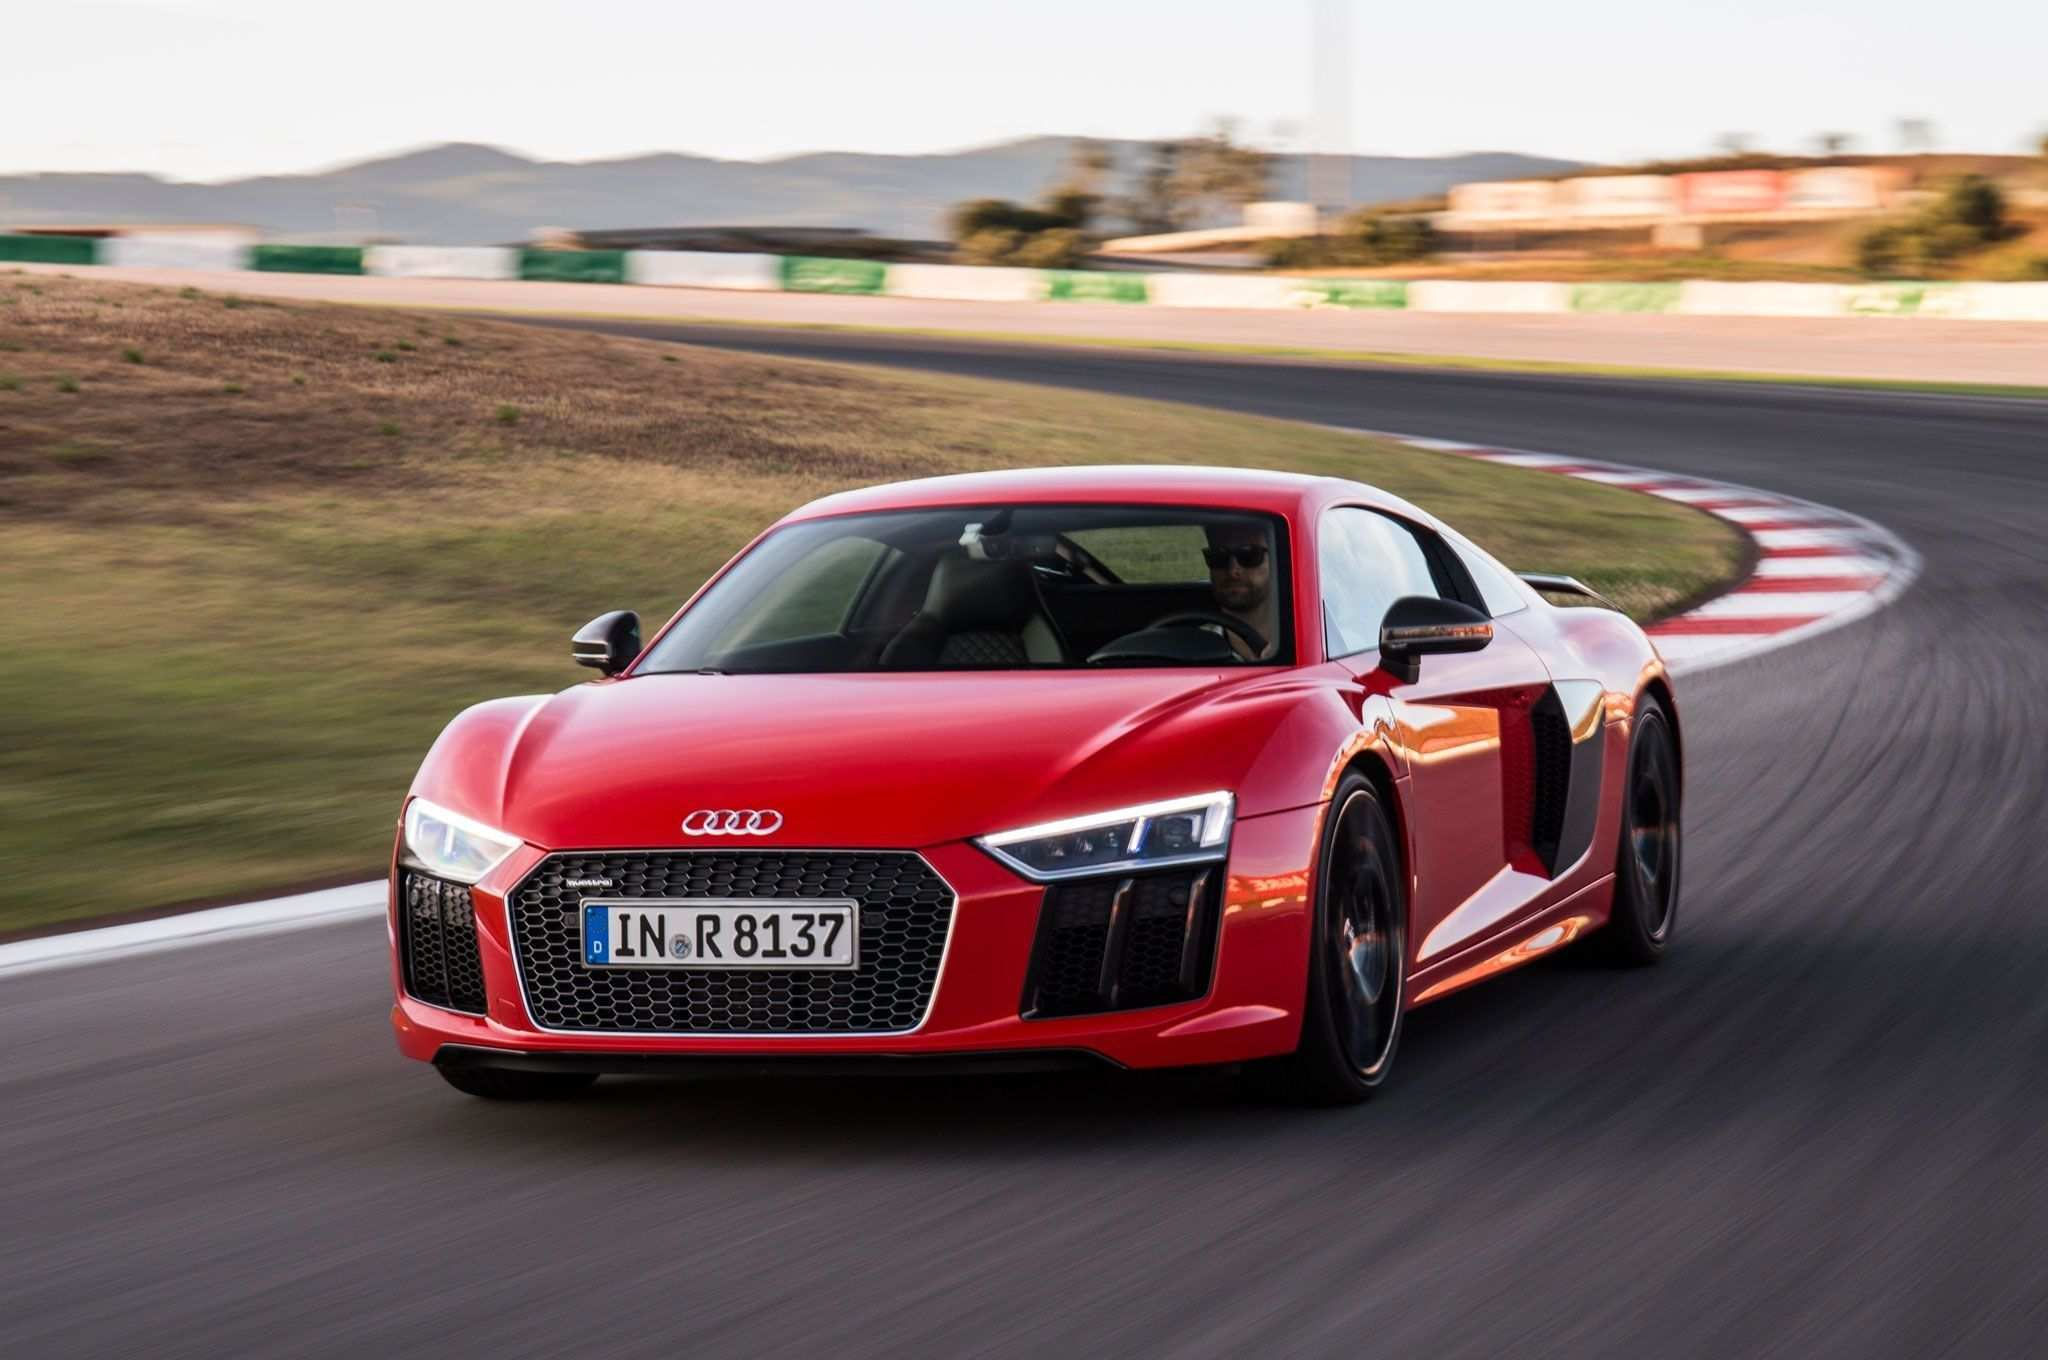 18 The 2019 Audi R8 LMXs Pricing